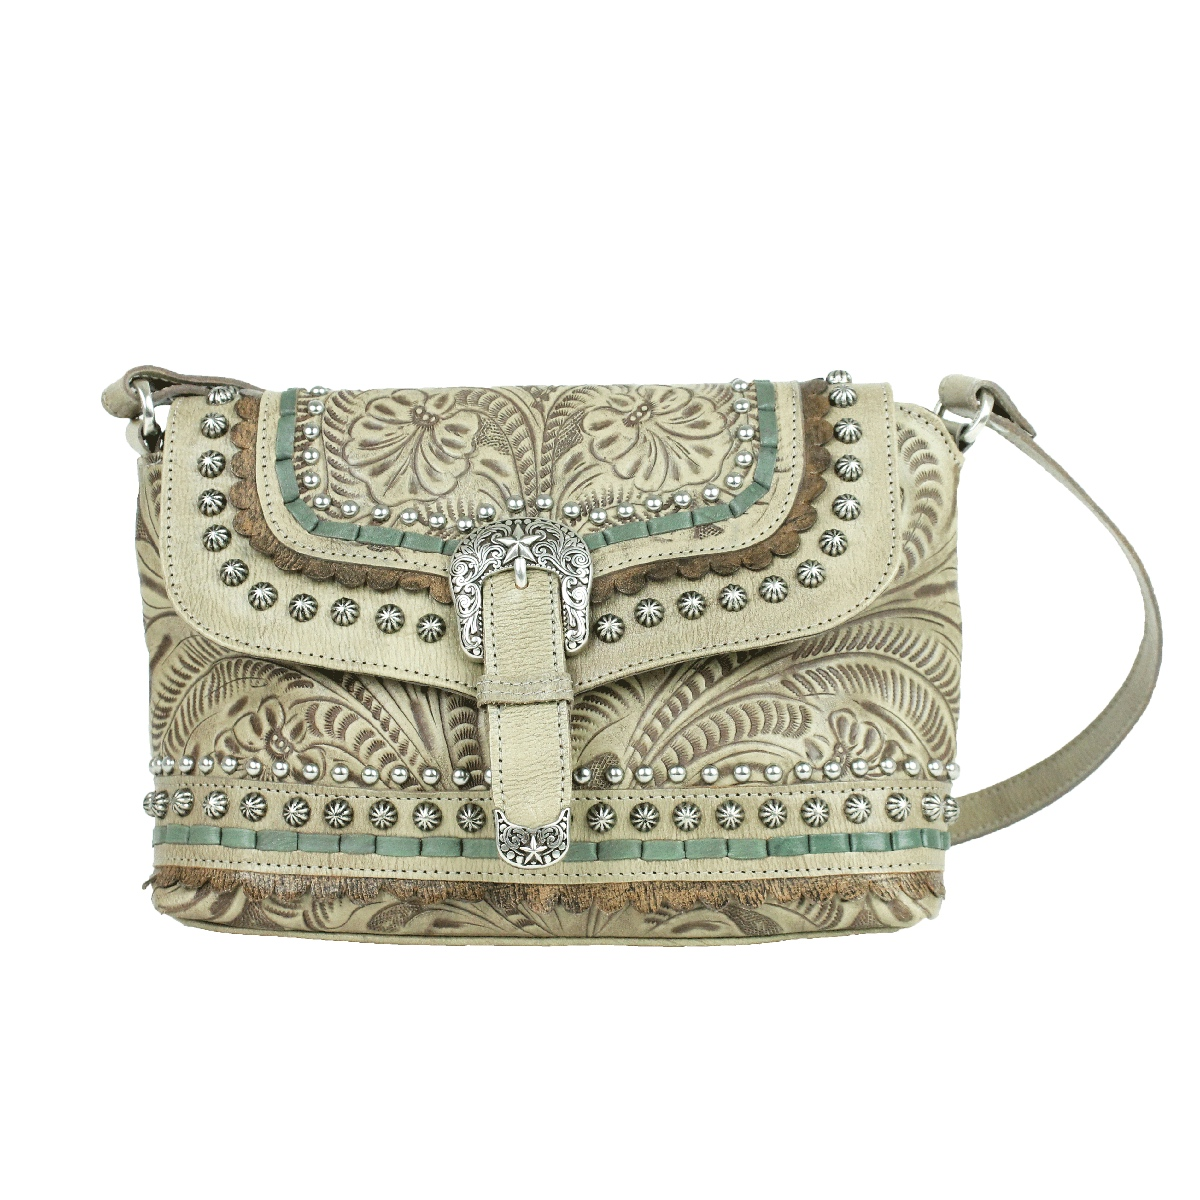 American West Blue Ridge Flap Crossbody Bag in Multiple Colors